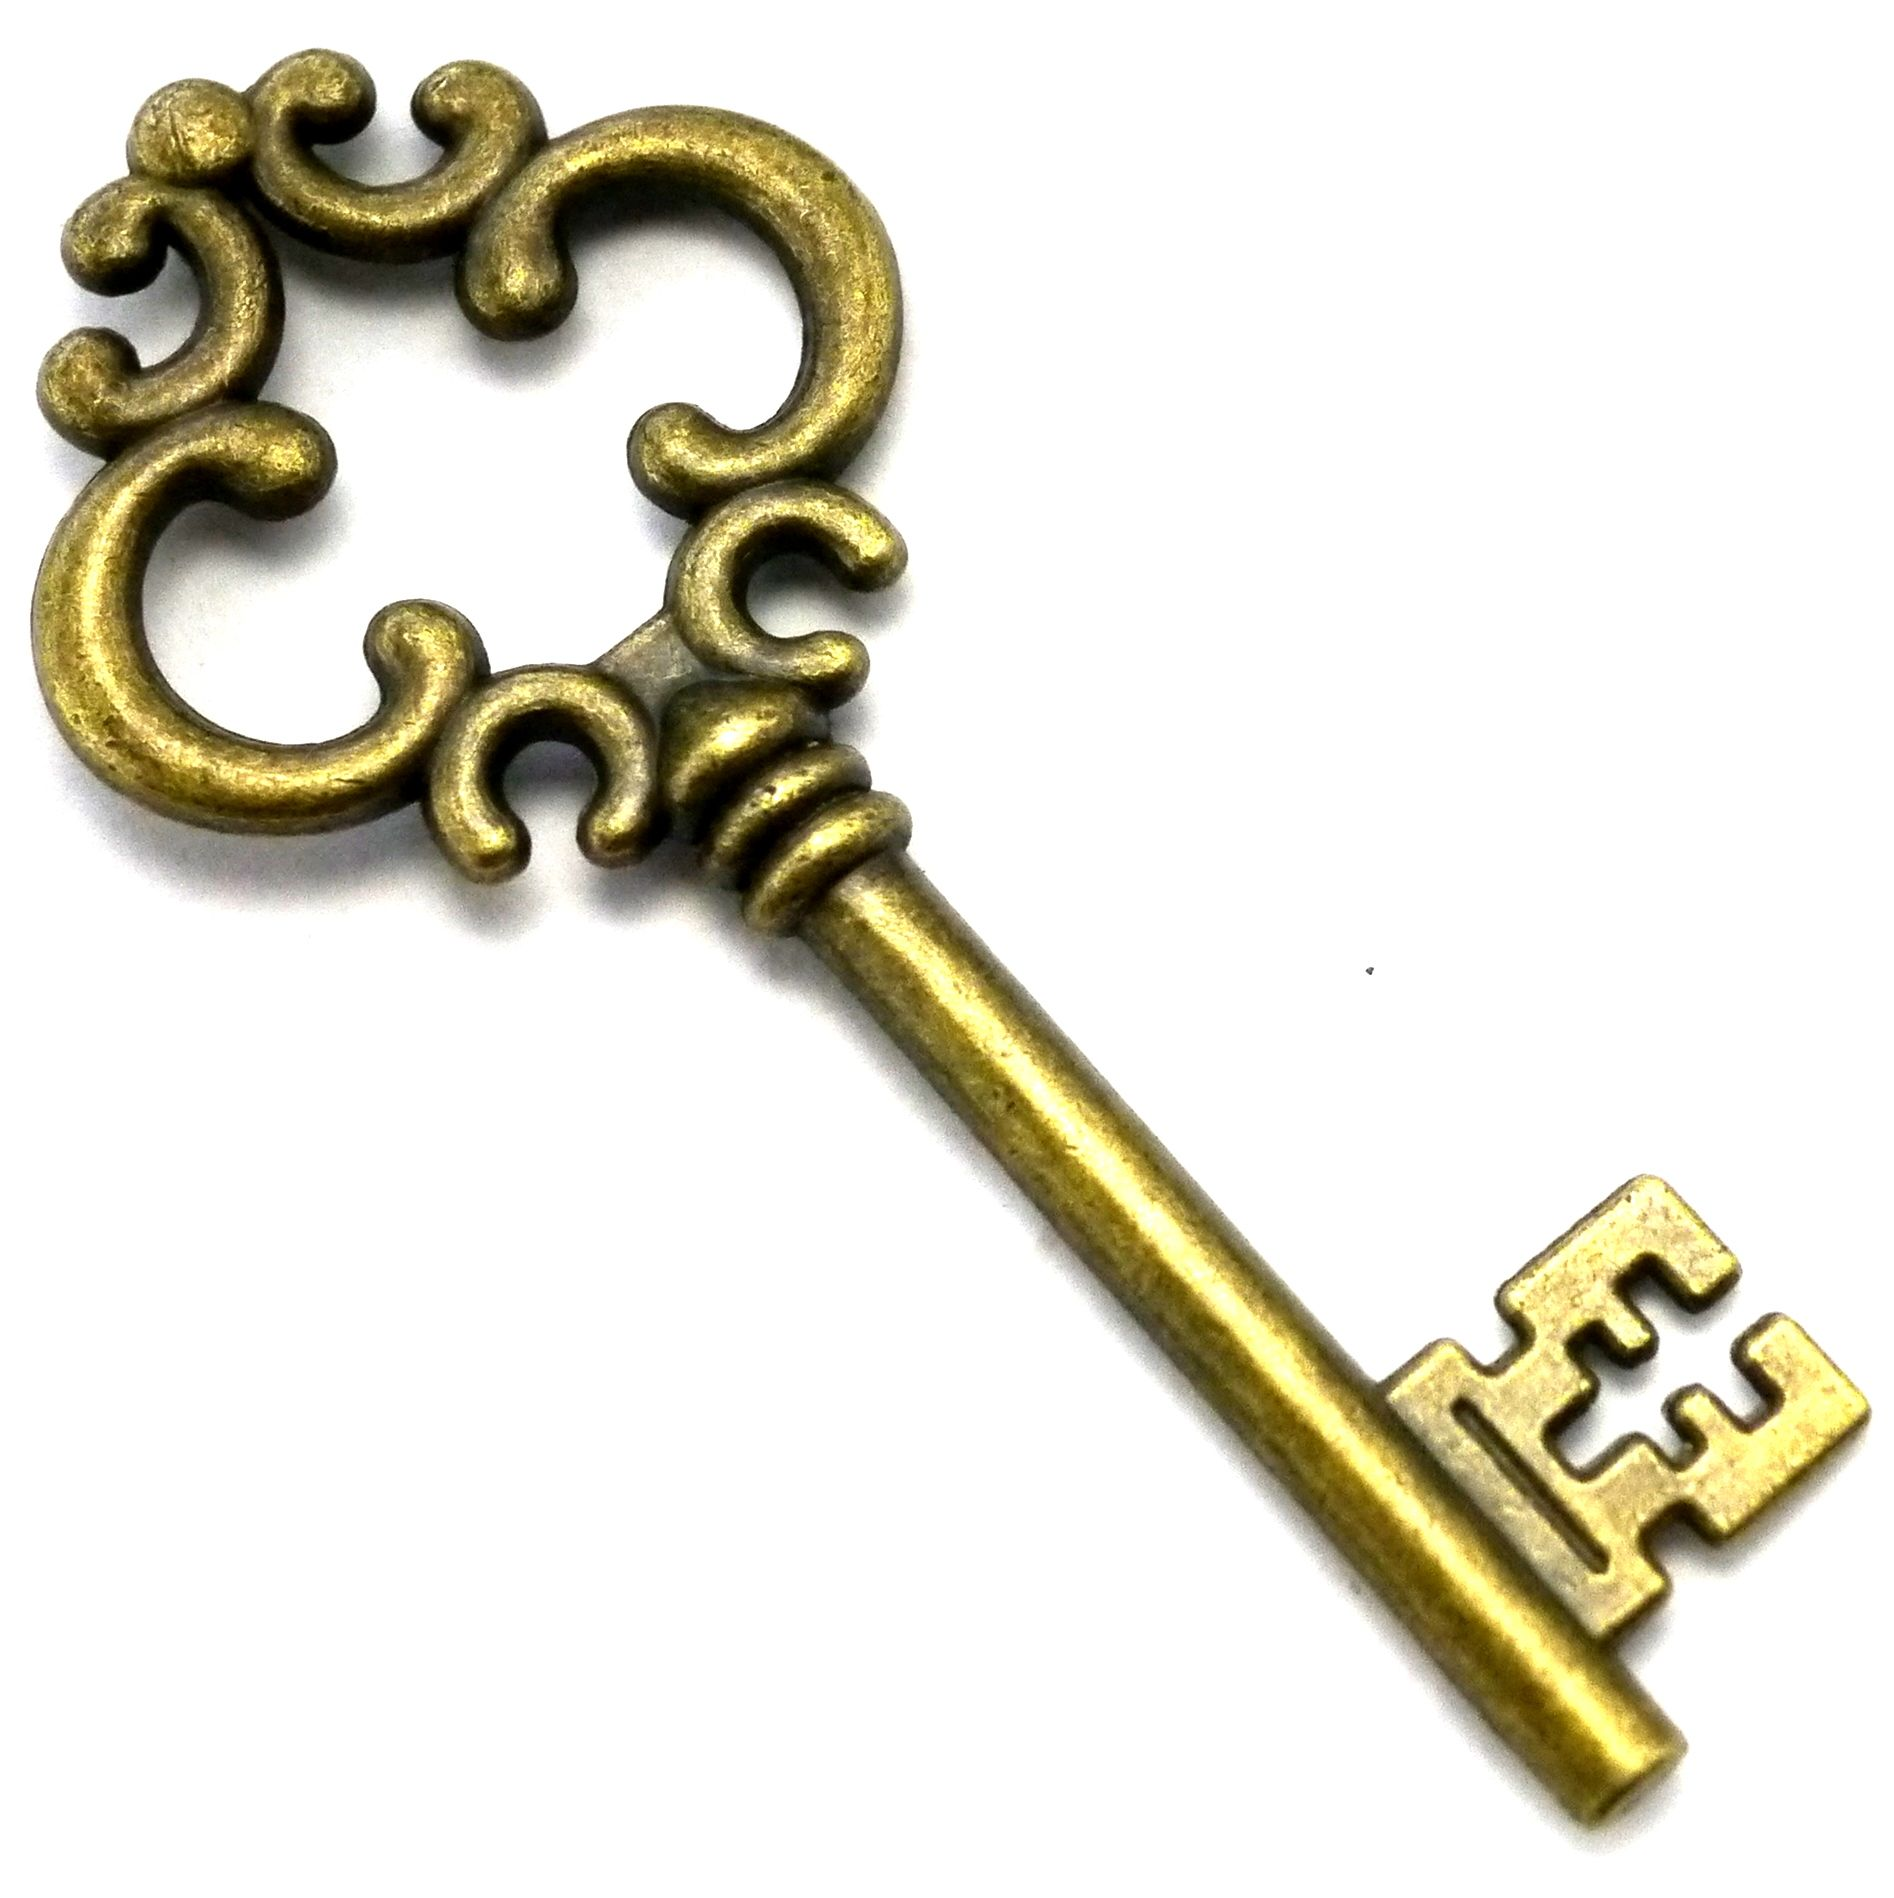 vintage old key classic to lock the doors clipart free